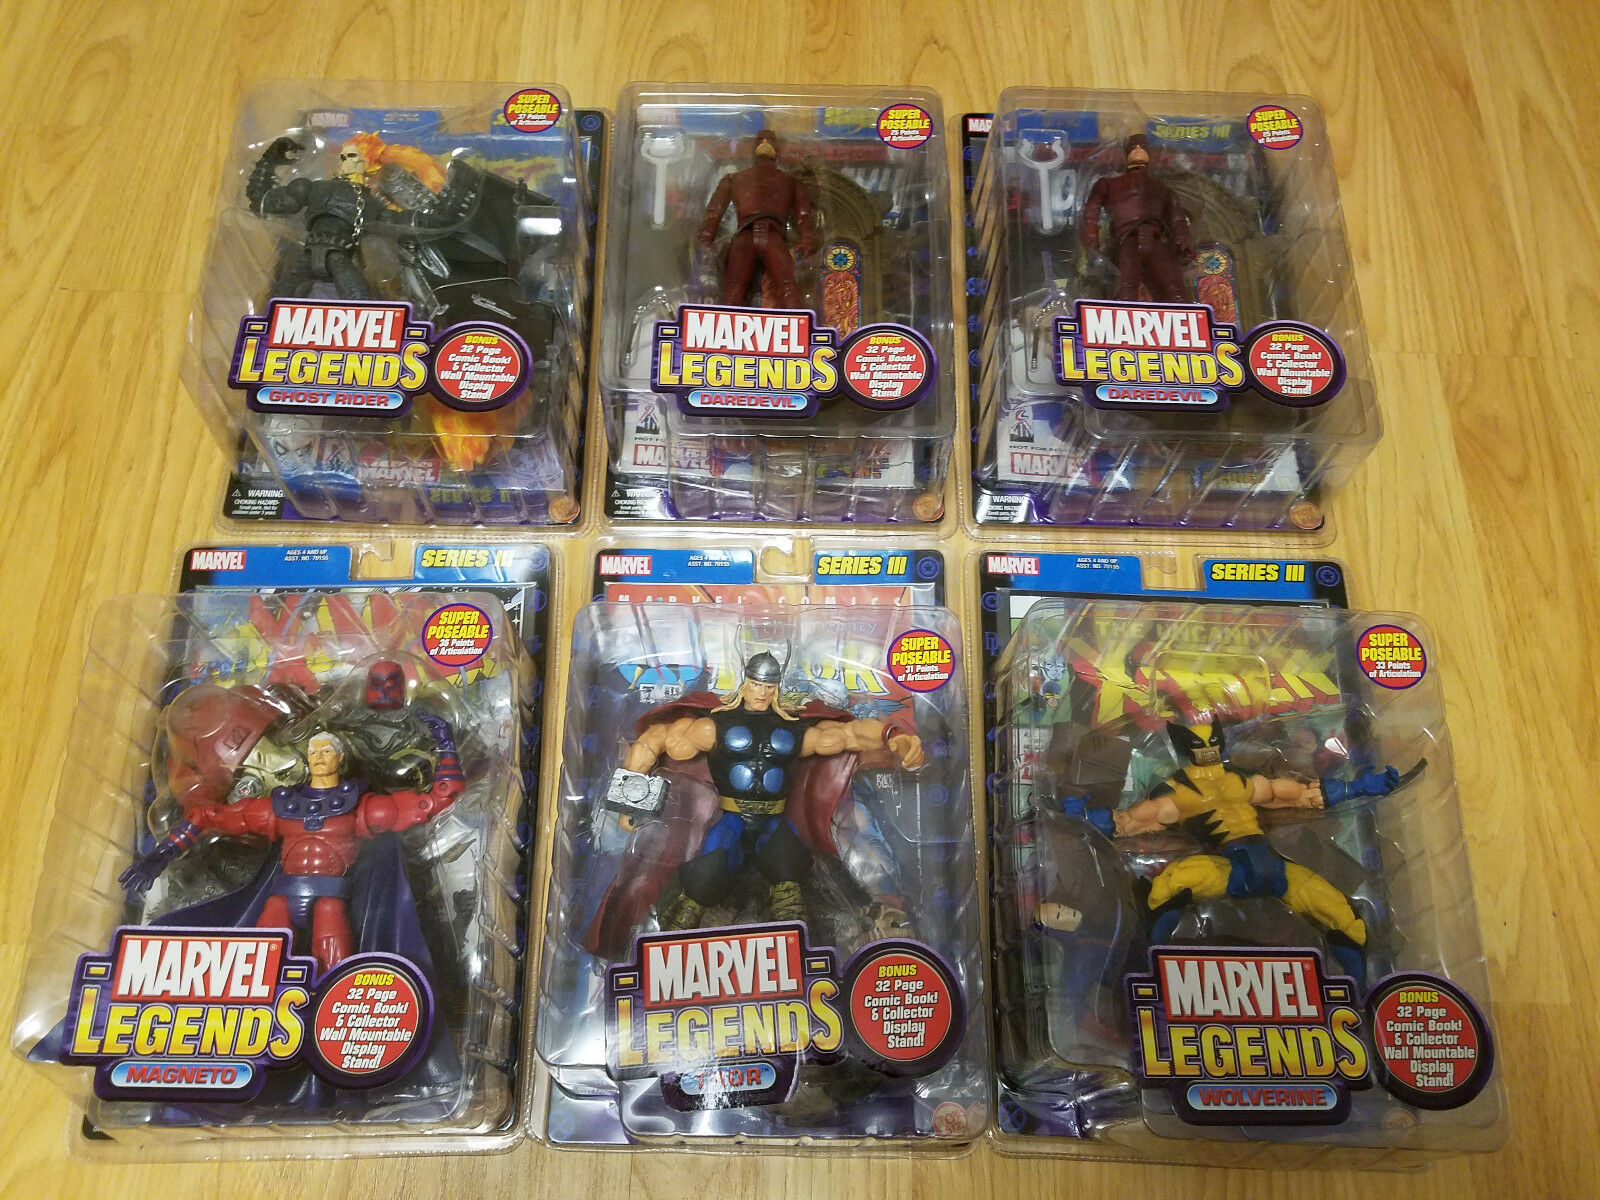 MARVEL LEGENDS Series 3 Set with Variant by TOY BIZ 2002 Case Fresh 6 Figures